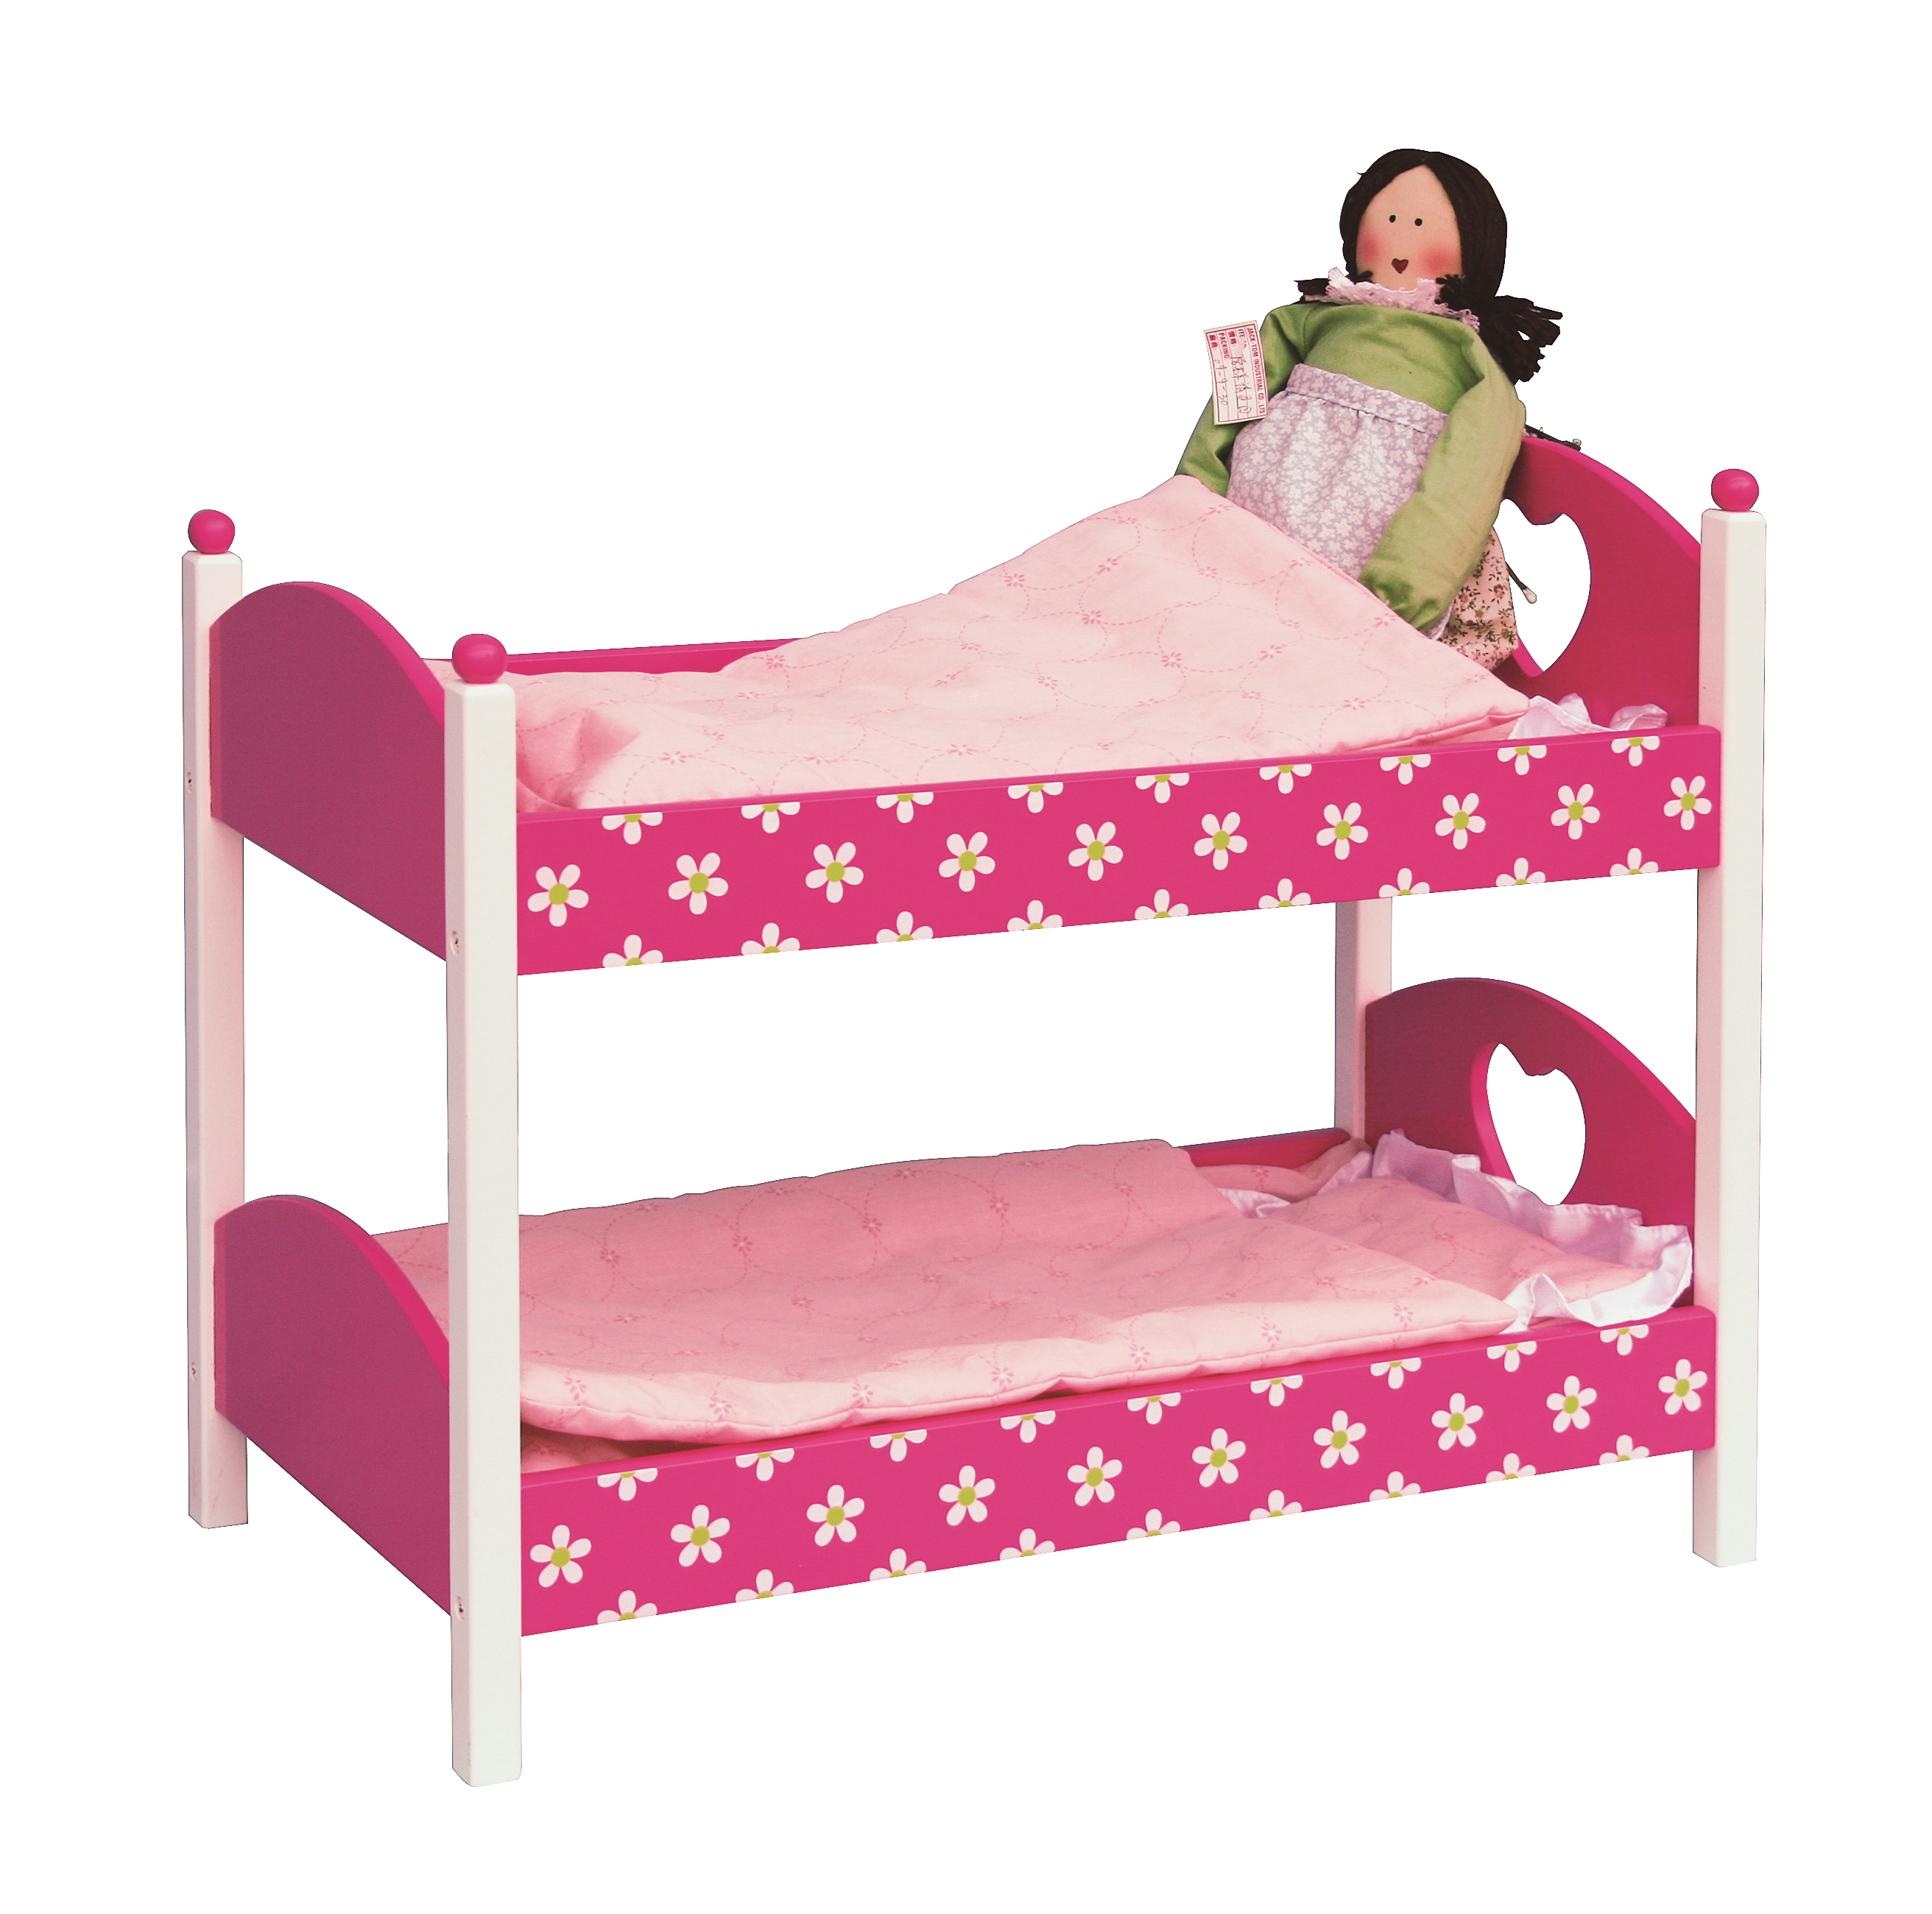 Bunk Bed For Doll Buy Cheap Bunk Beds Doll Bunk Bed Astm En71 Product On Alibaba Com